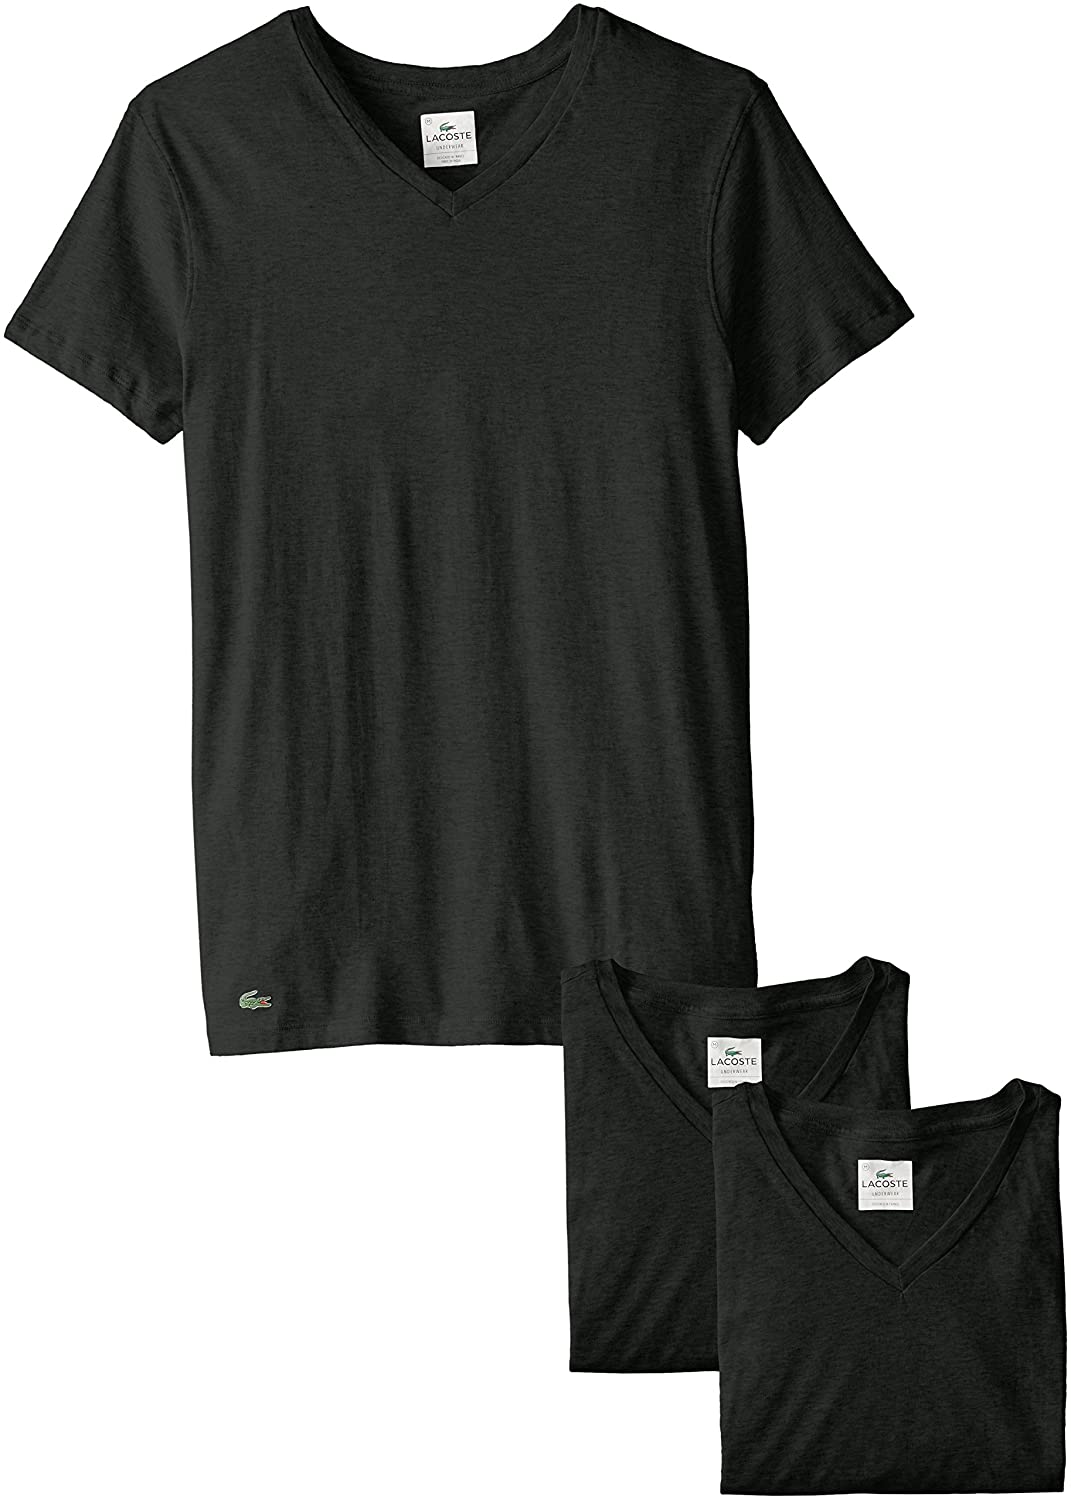 a99187988 Lacoste Men s 3-Pack Essentials Cotton V-Neck T-Shirt  Amazon.ca  Clothing    Accessories